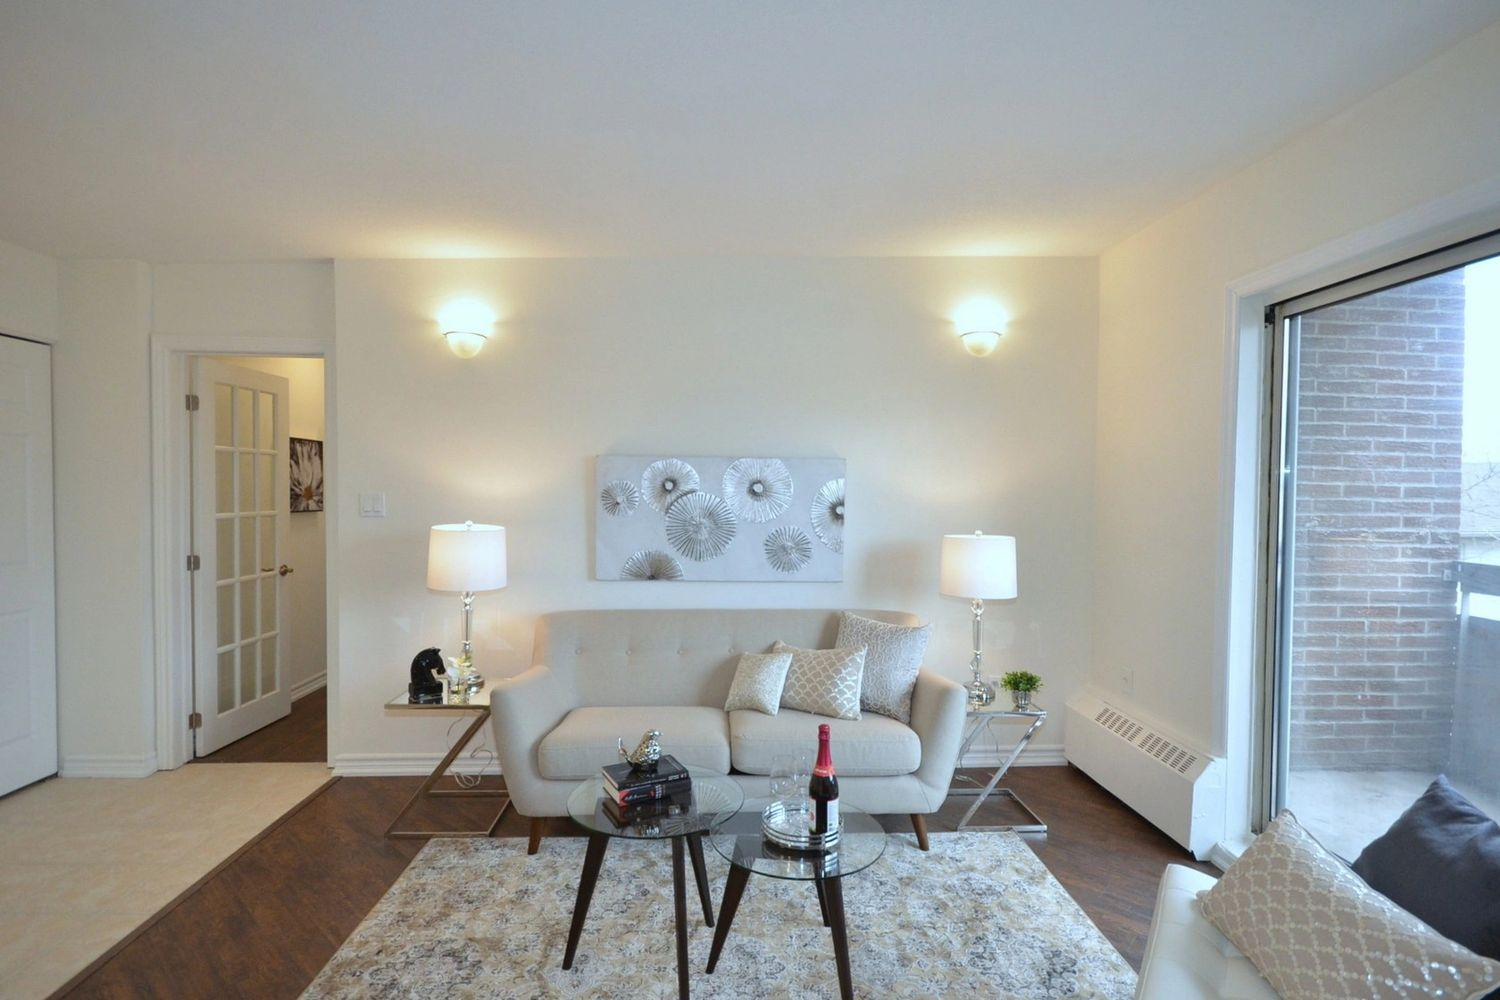 Home Staging & Decor